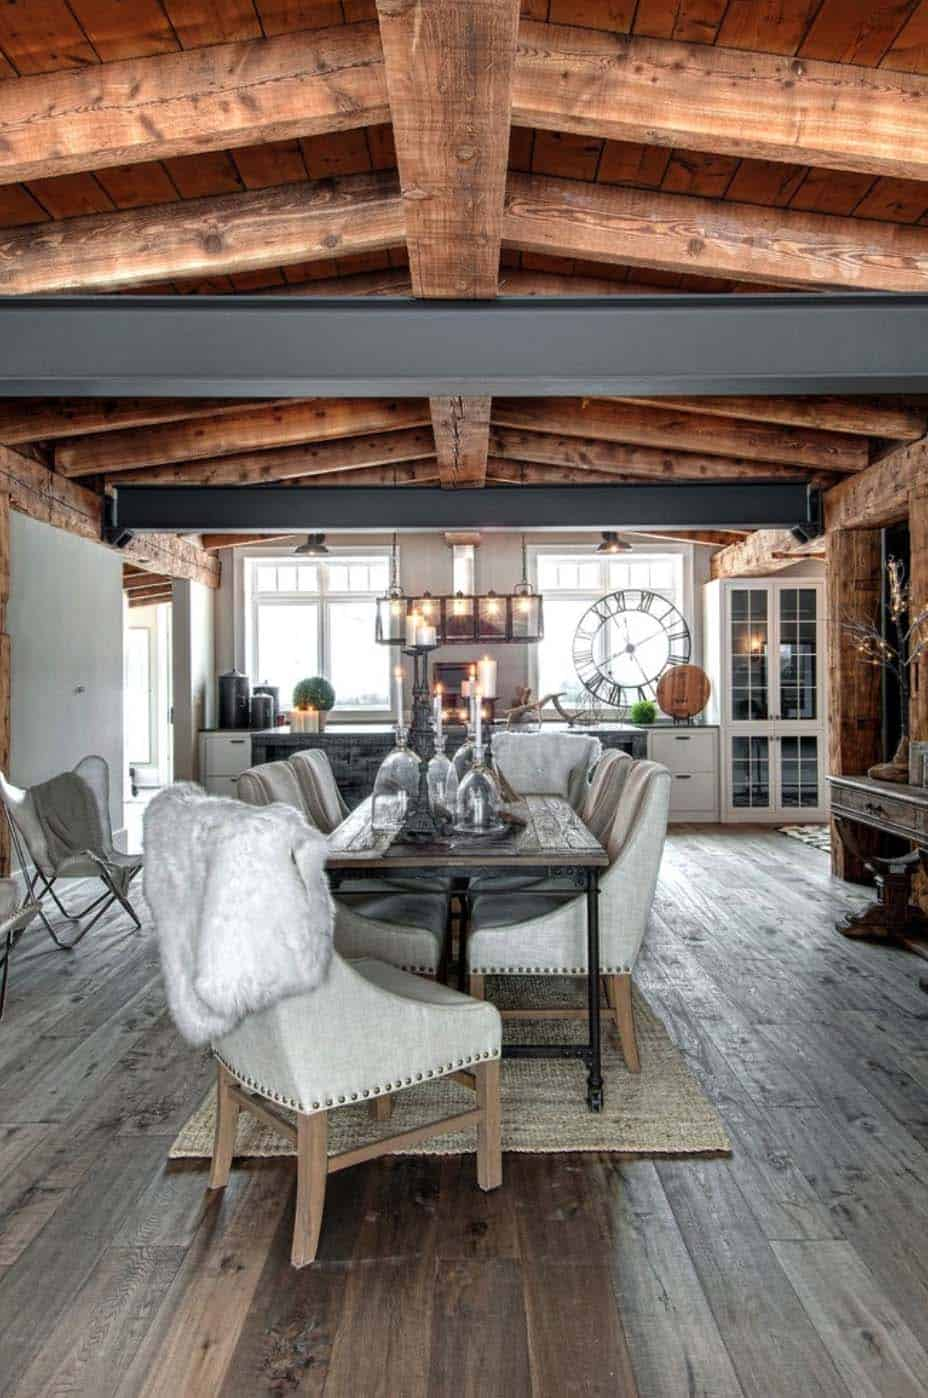 Rustic-Modern-Design-Timberworx Custom Homes-09-1 Kindesign